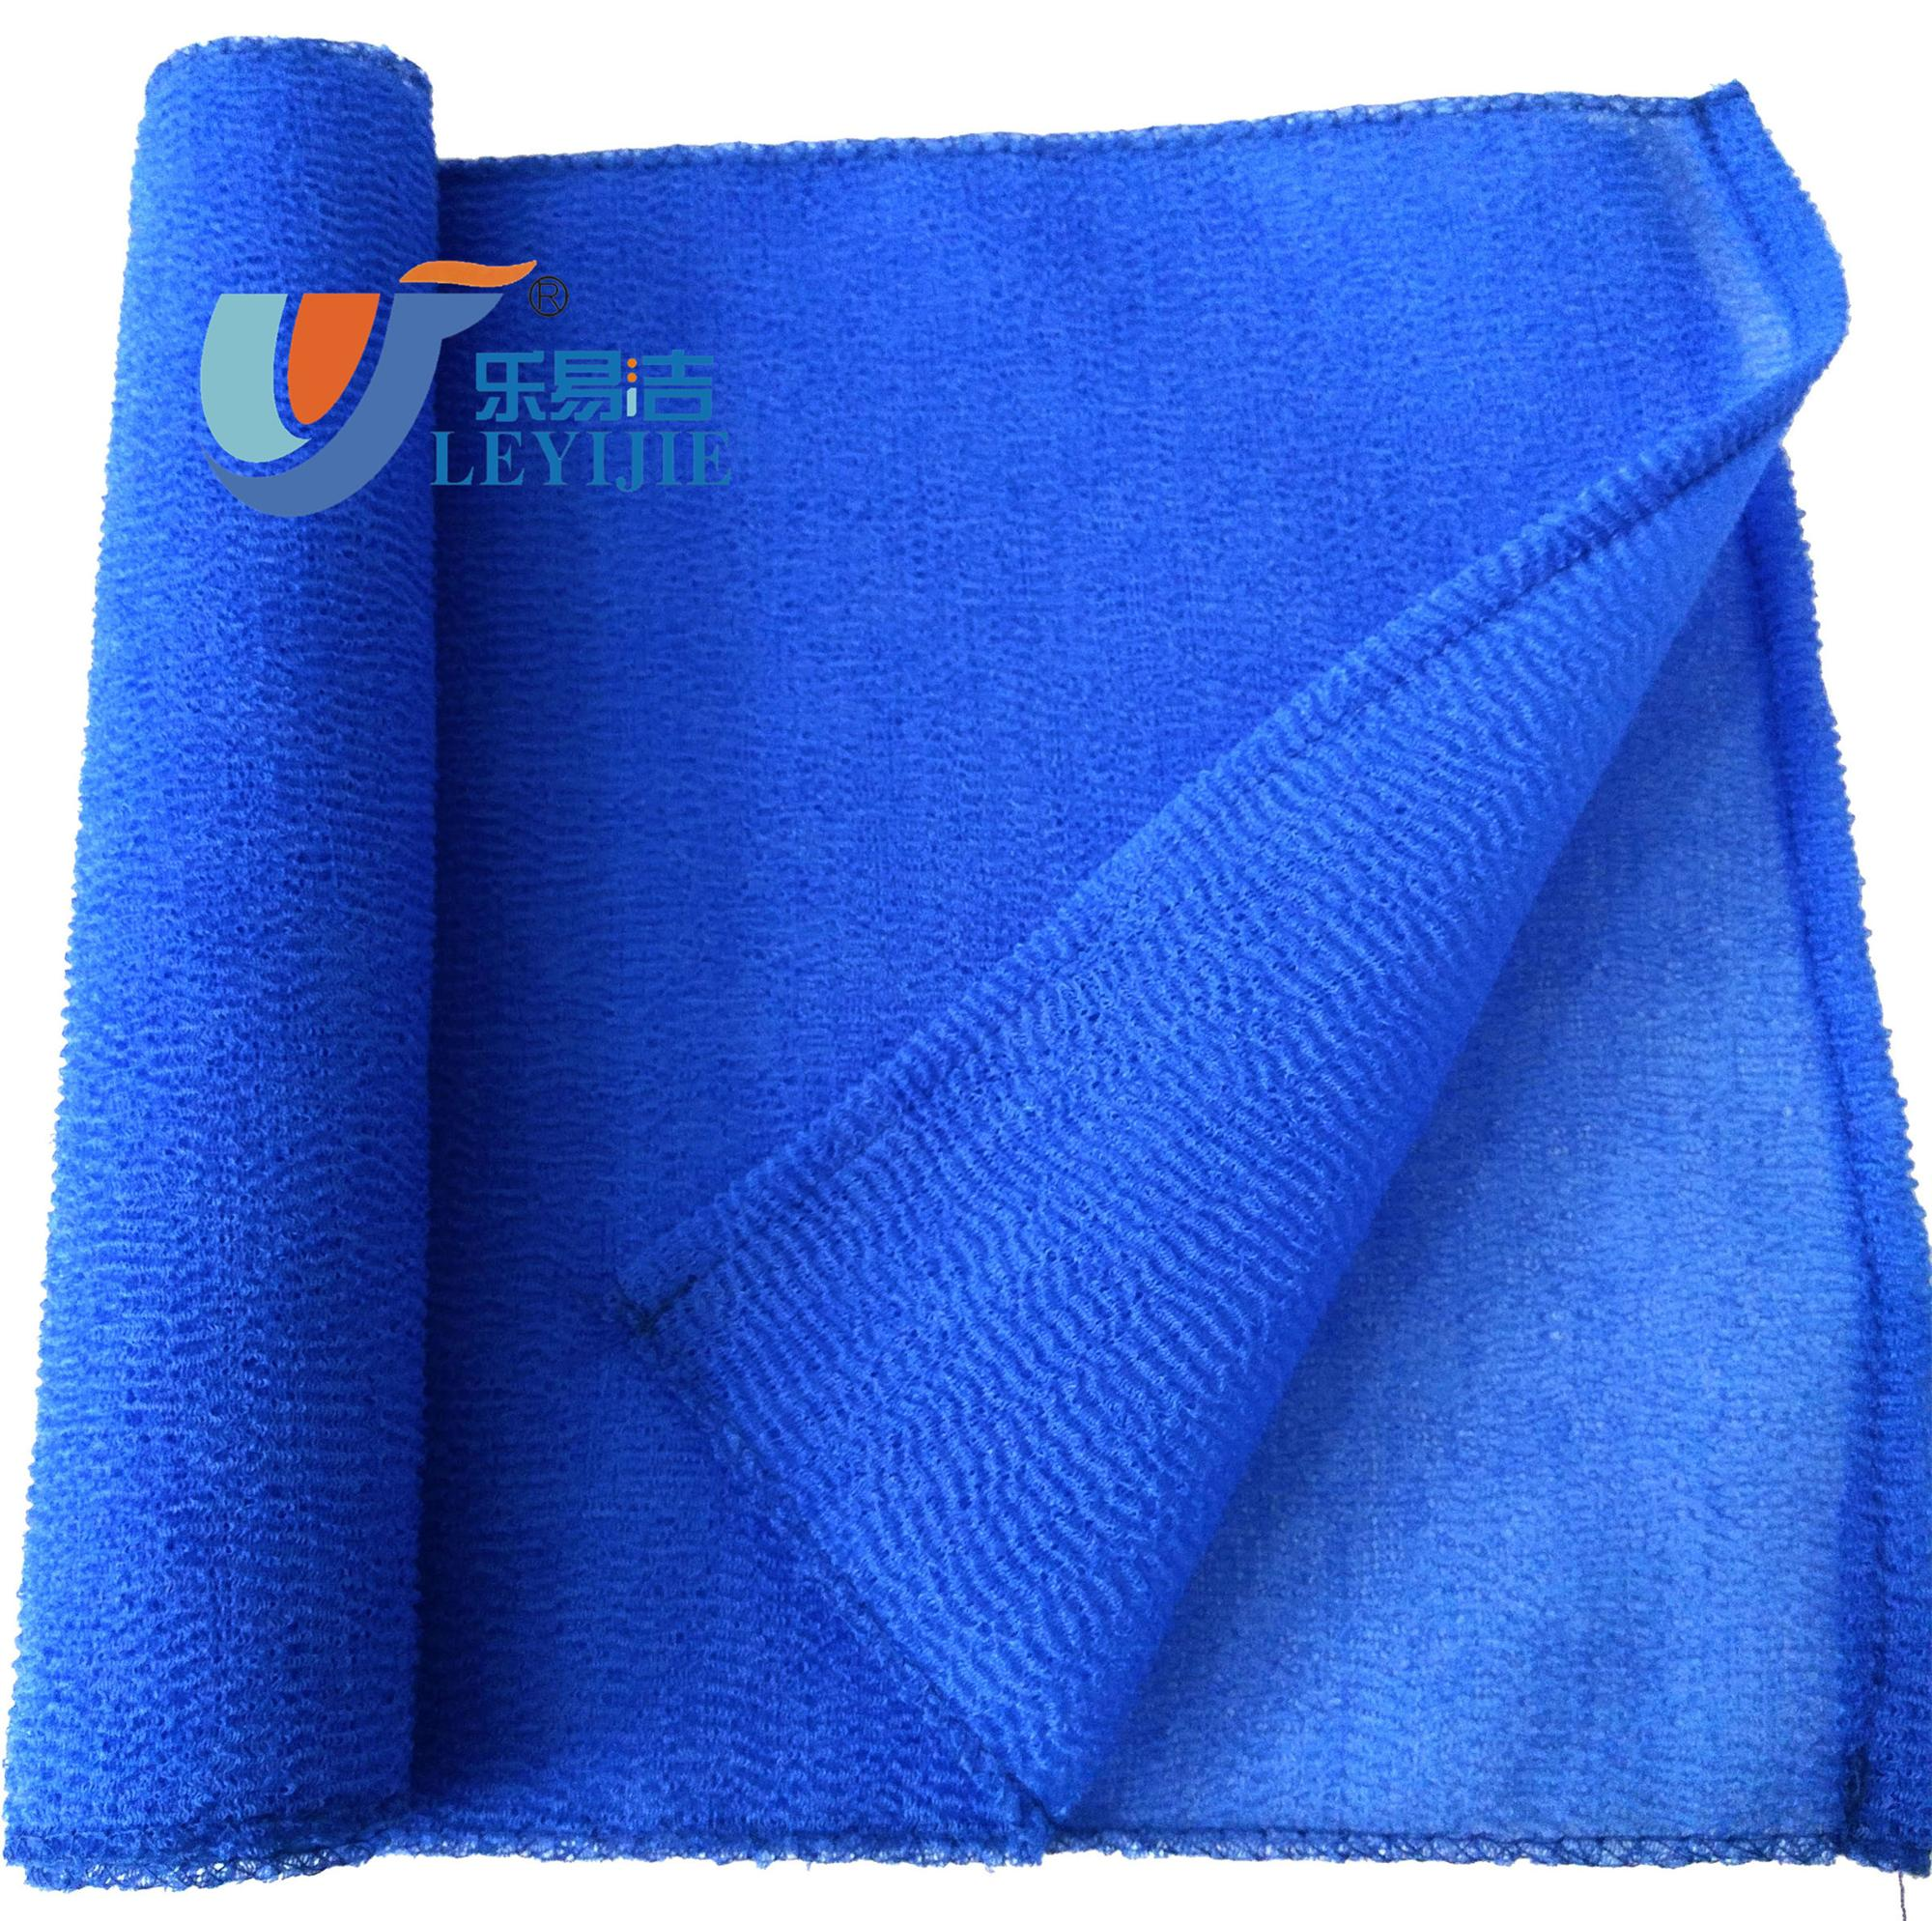 New Fashion Bath Product Skin Exfoliating Bath Towel Nylon Washing Towel Spa Body Wrap Towel